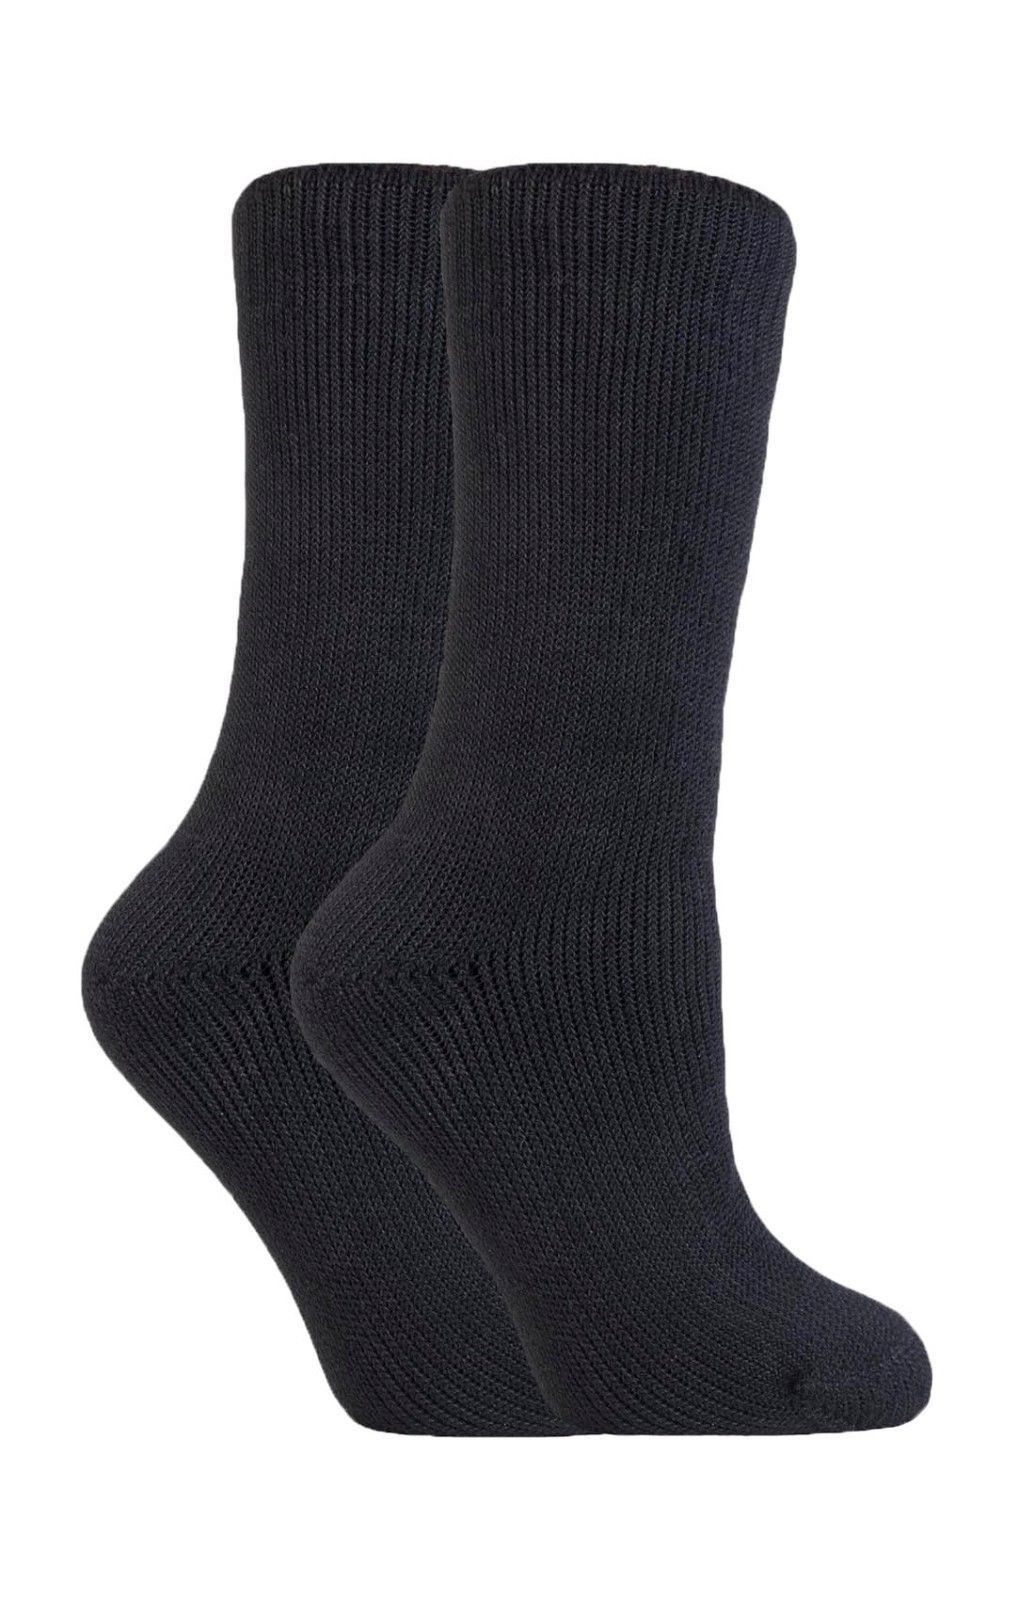 Heat Force - 2 Pack Womens Winter Warm Thick Thermal Crew Socks, 3 Colors, 5-9US